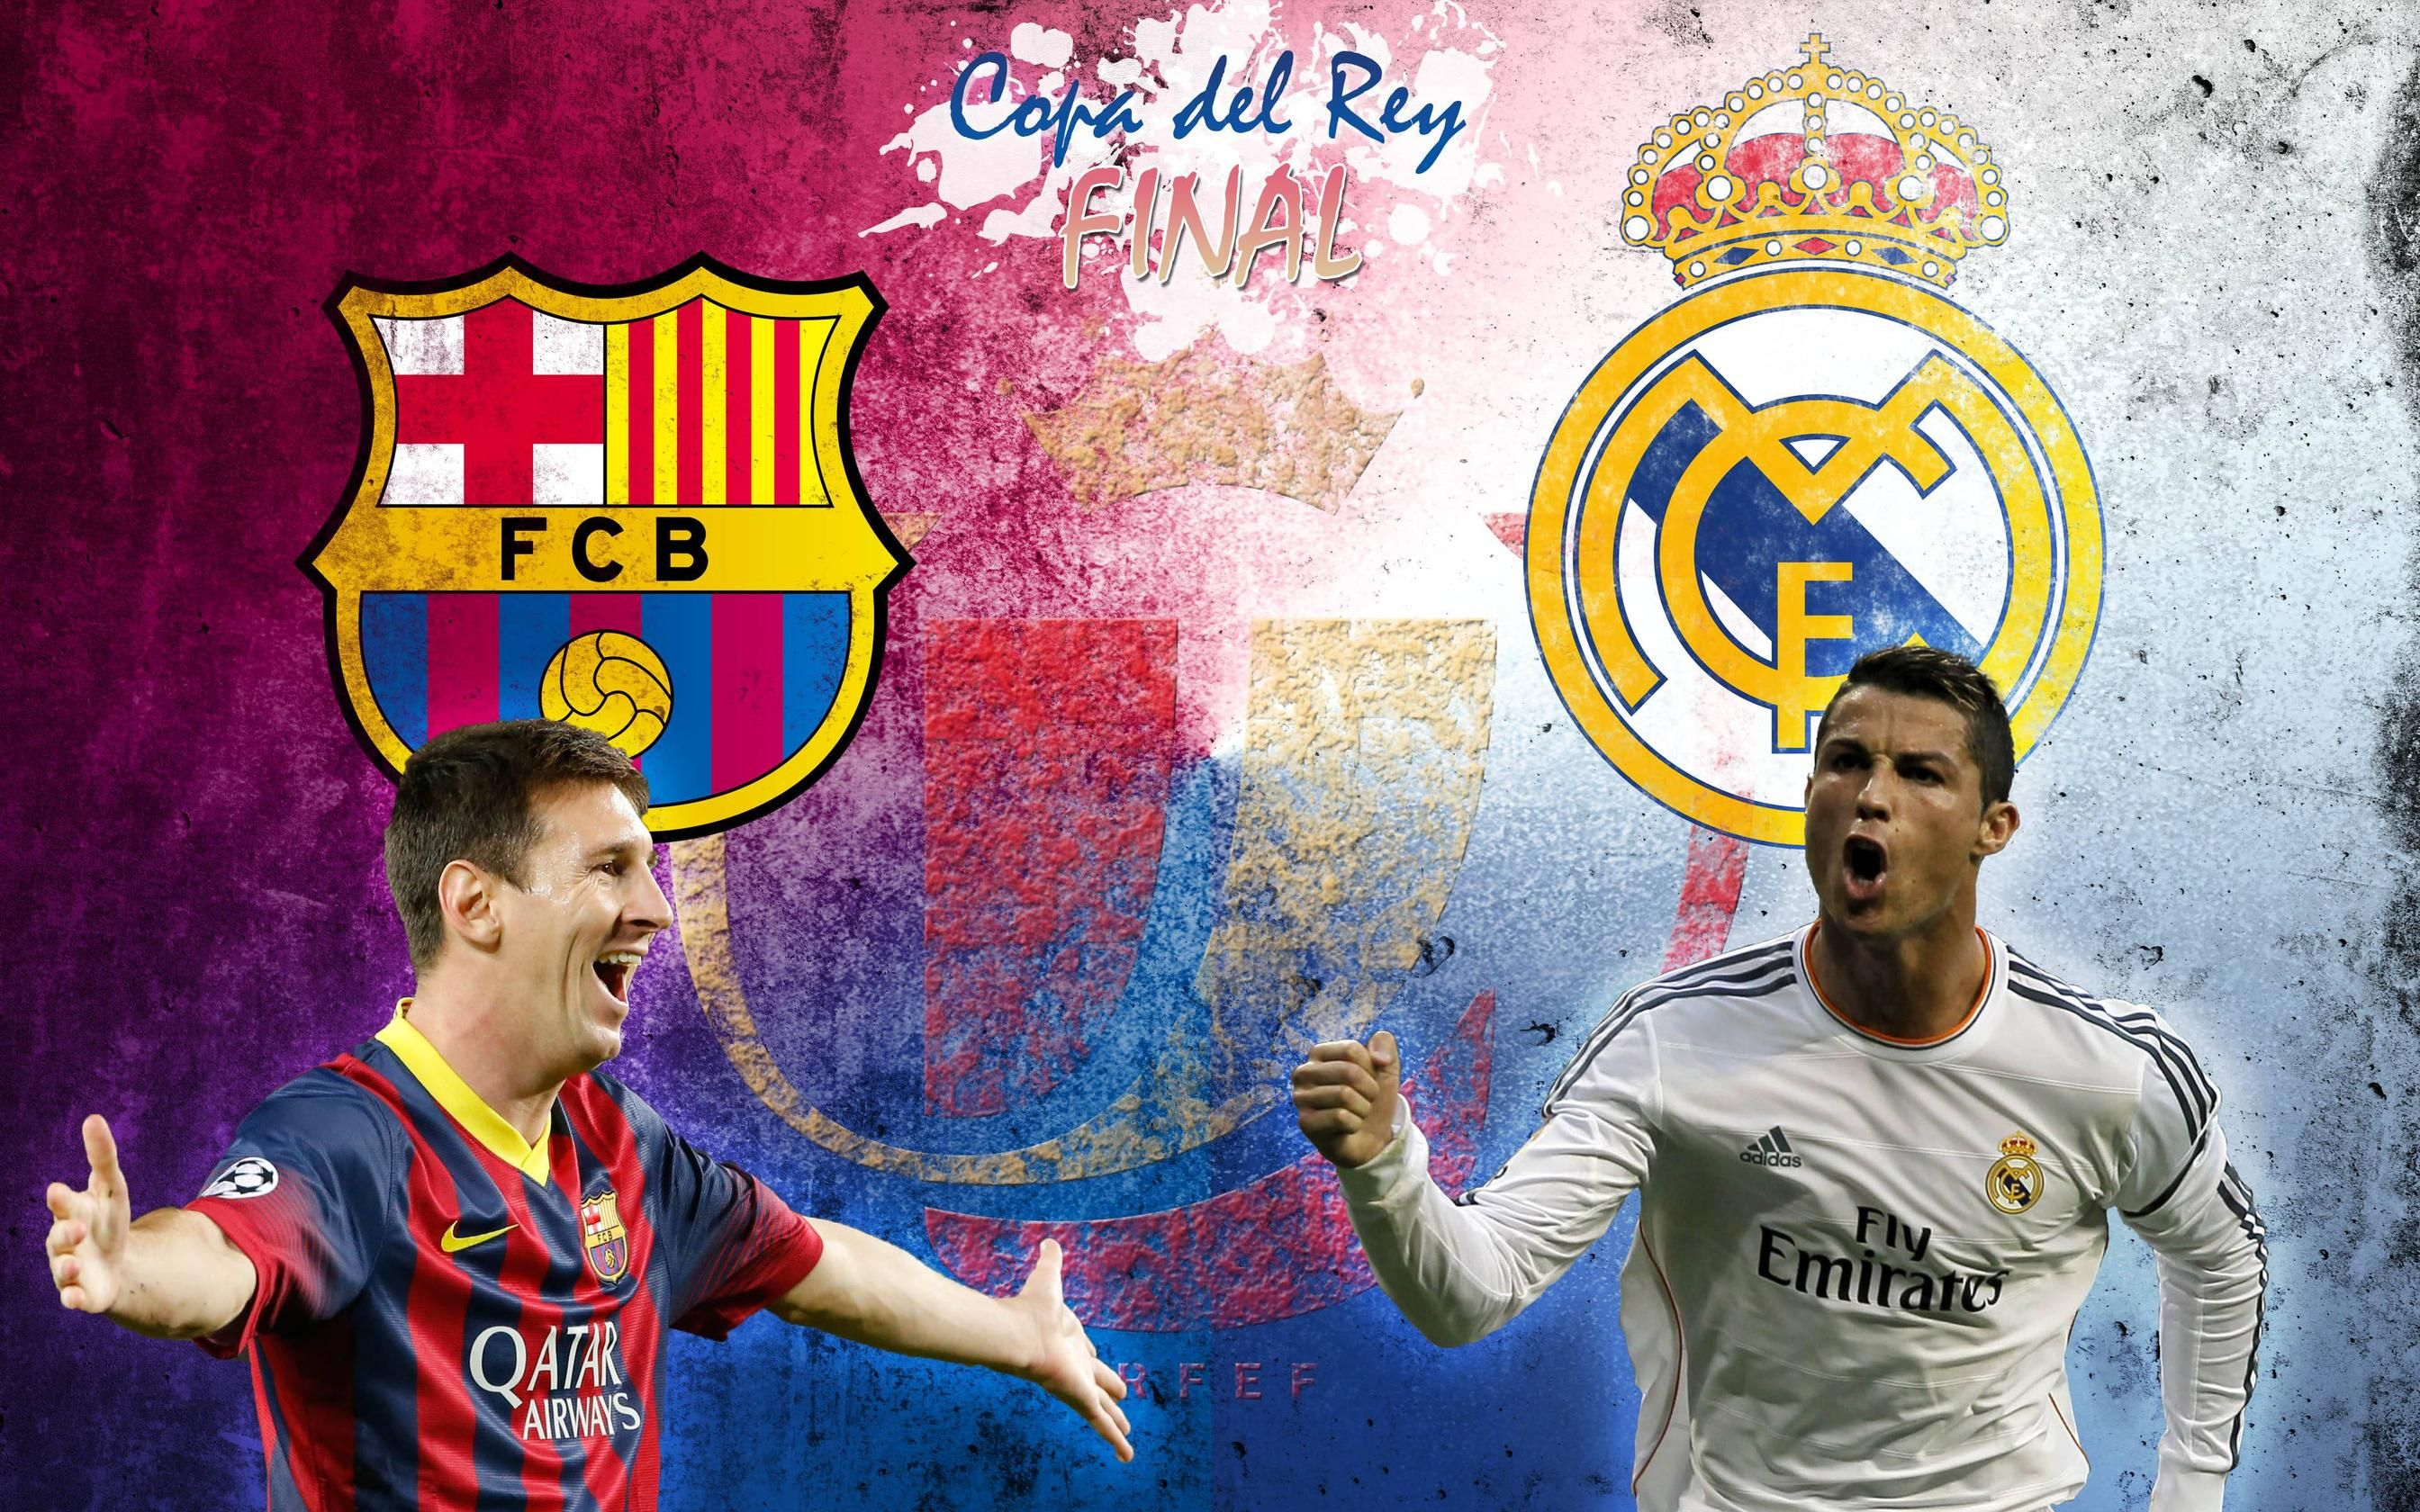 Real Madrid Vs Barcelona Wallpaper Christiano Ronaldo Ronaldo Wallpapers Ronaldo